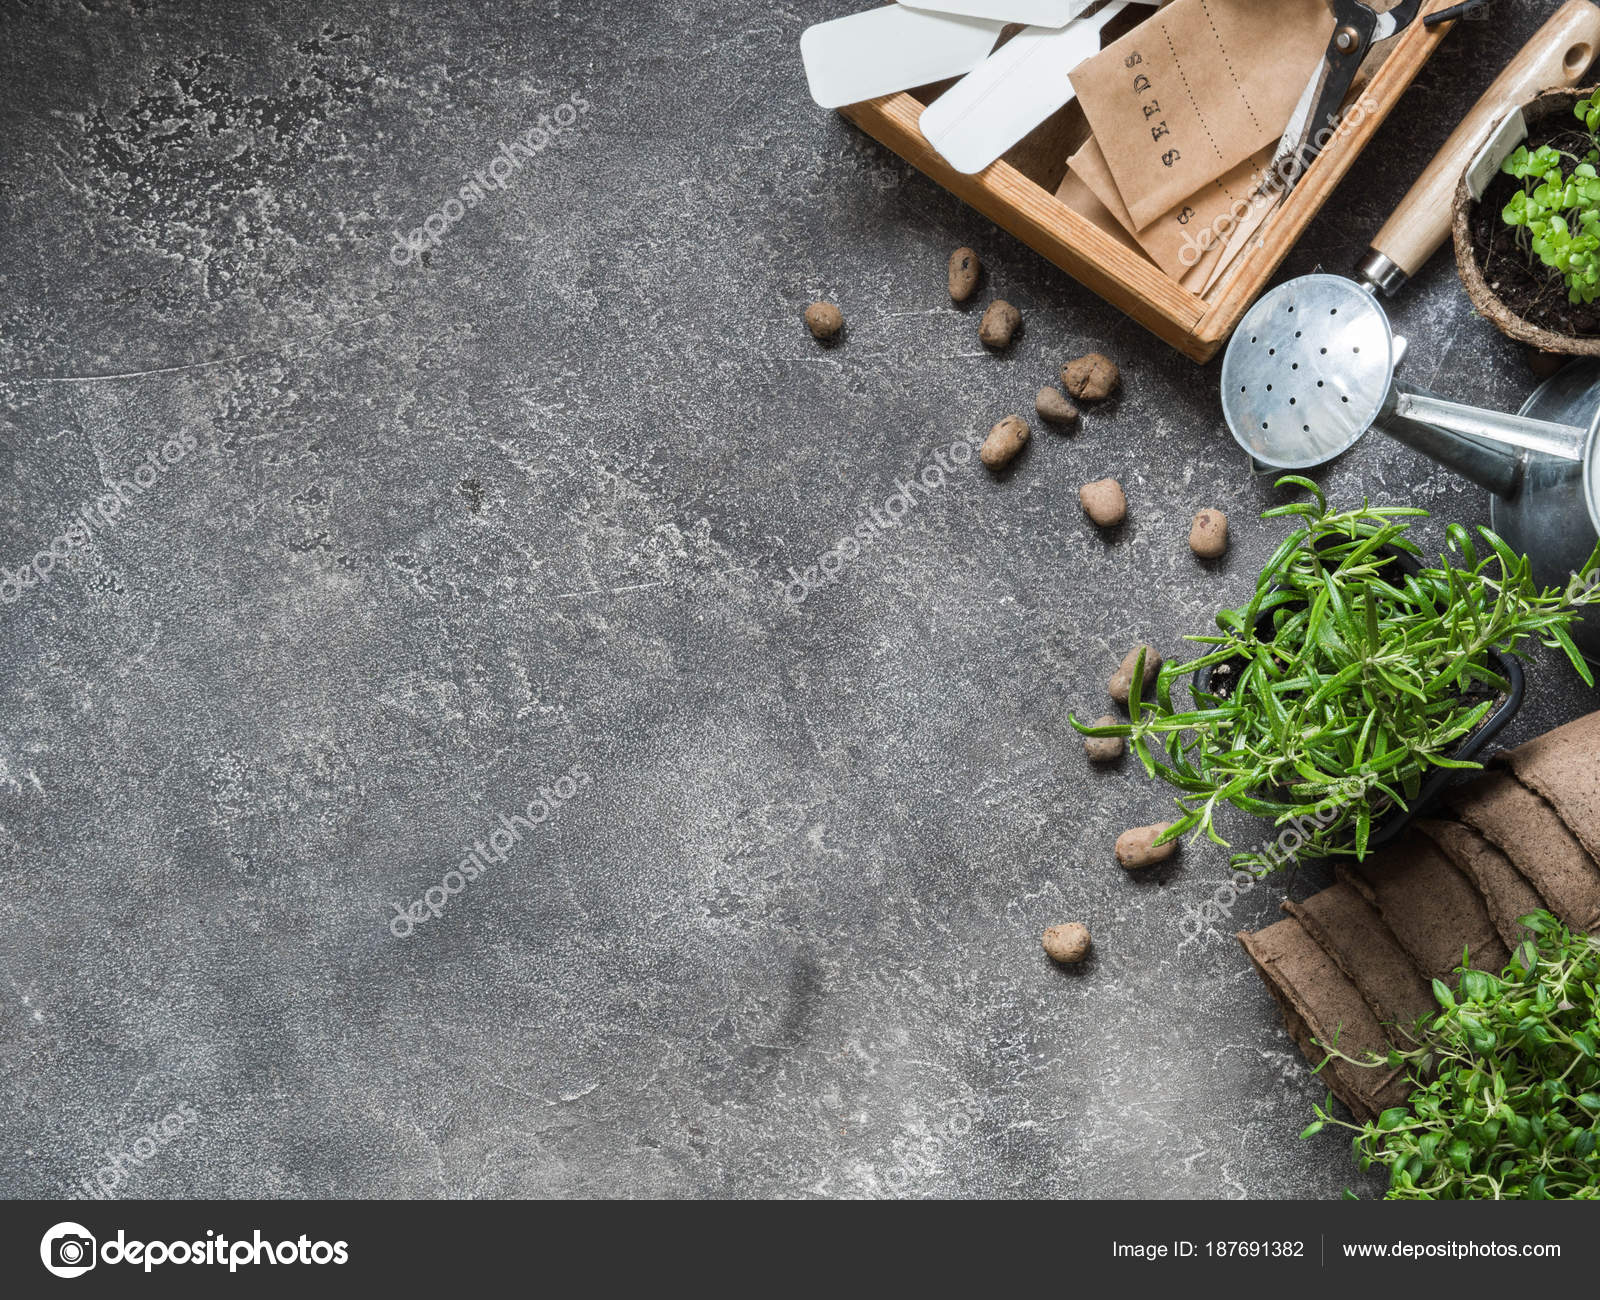 52705414601a Seedlings Herbs Basil Rosemary Thyme Various Garden Tools Gray Background —  Stock Photo